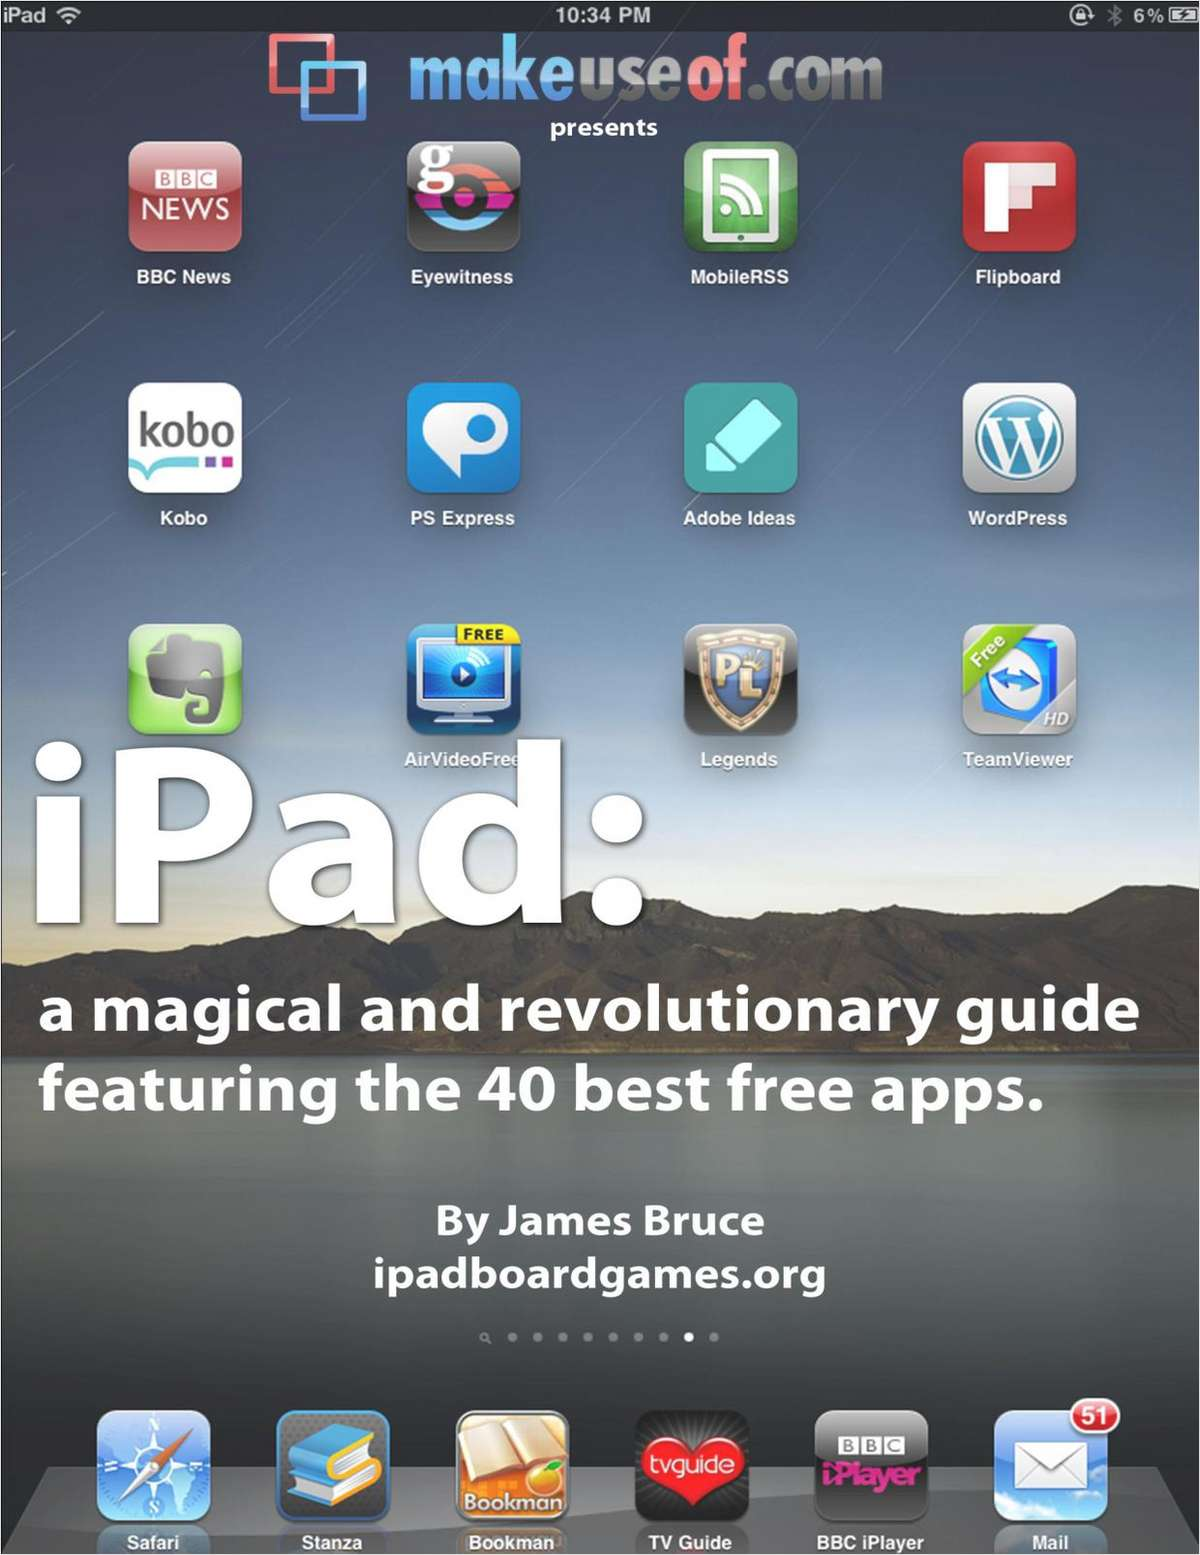 iPad: A Magical and Revolutionary Guide